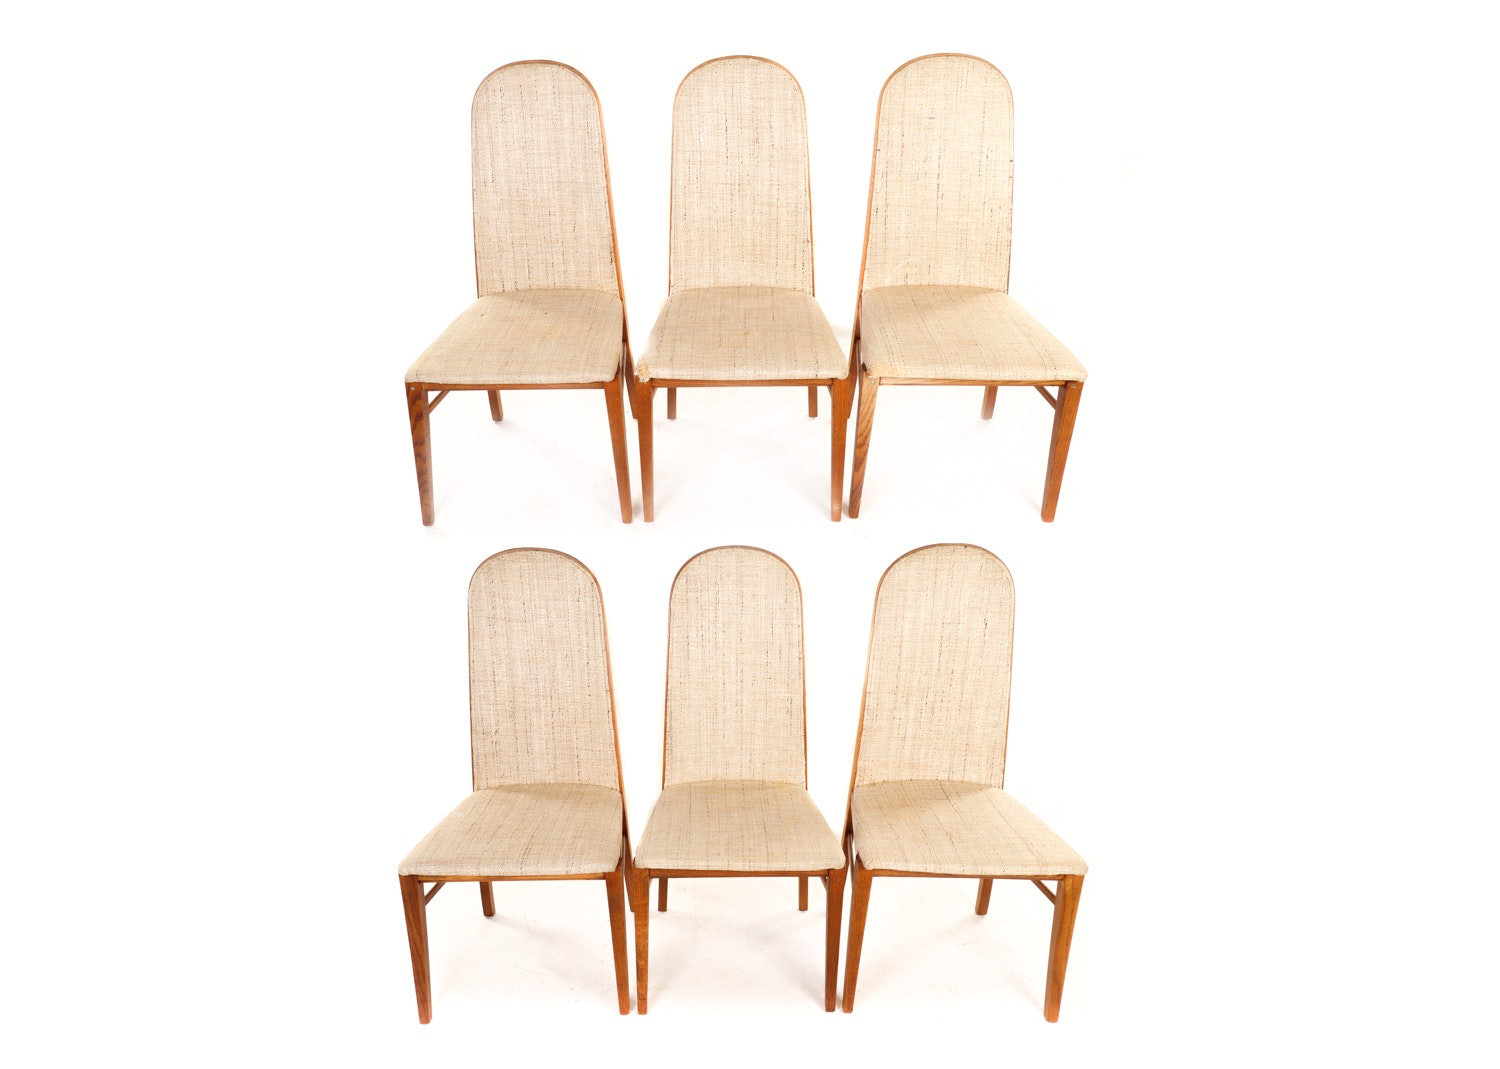 Tan Upholstered Oak Dining Chairs by Dillingham